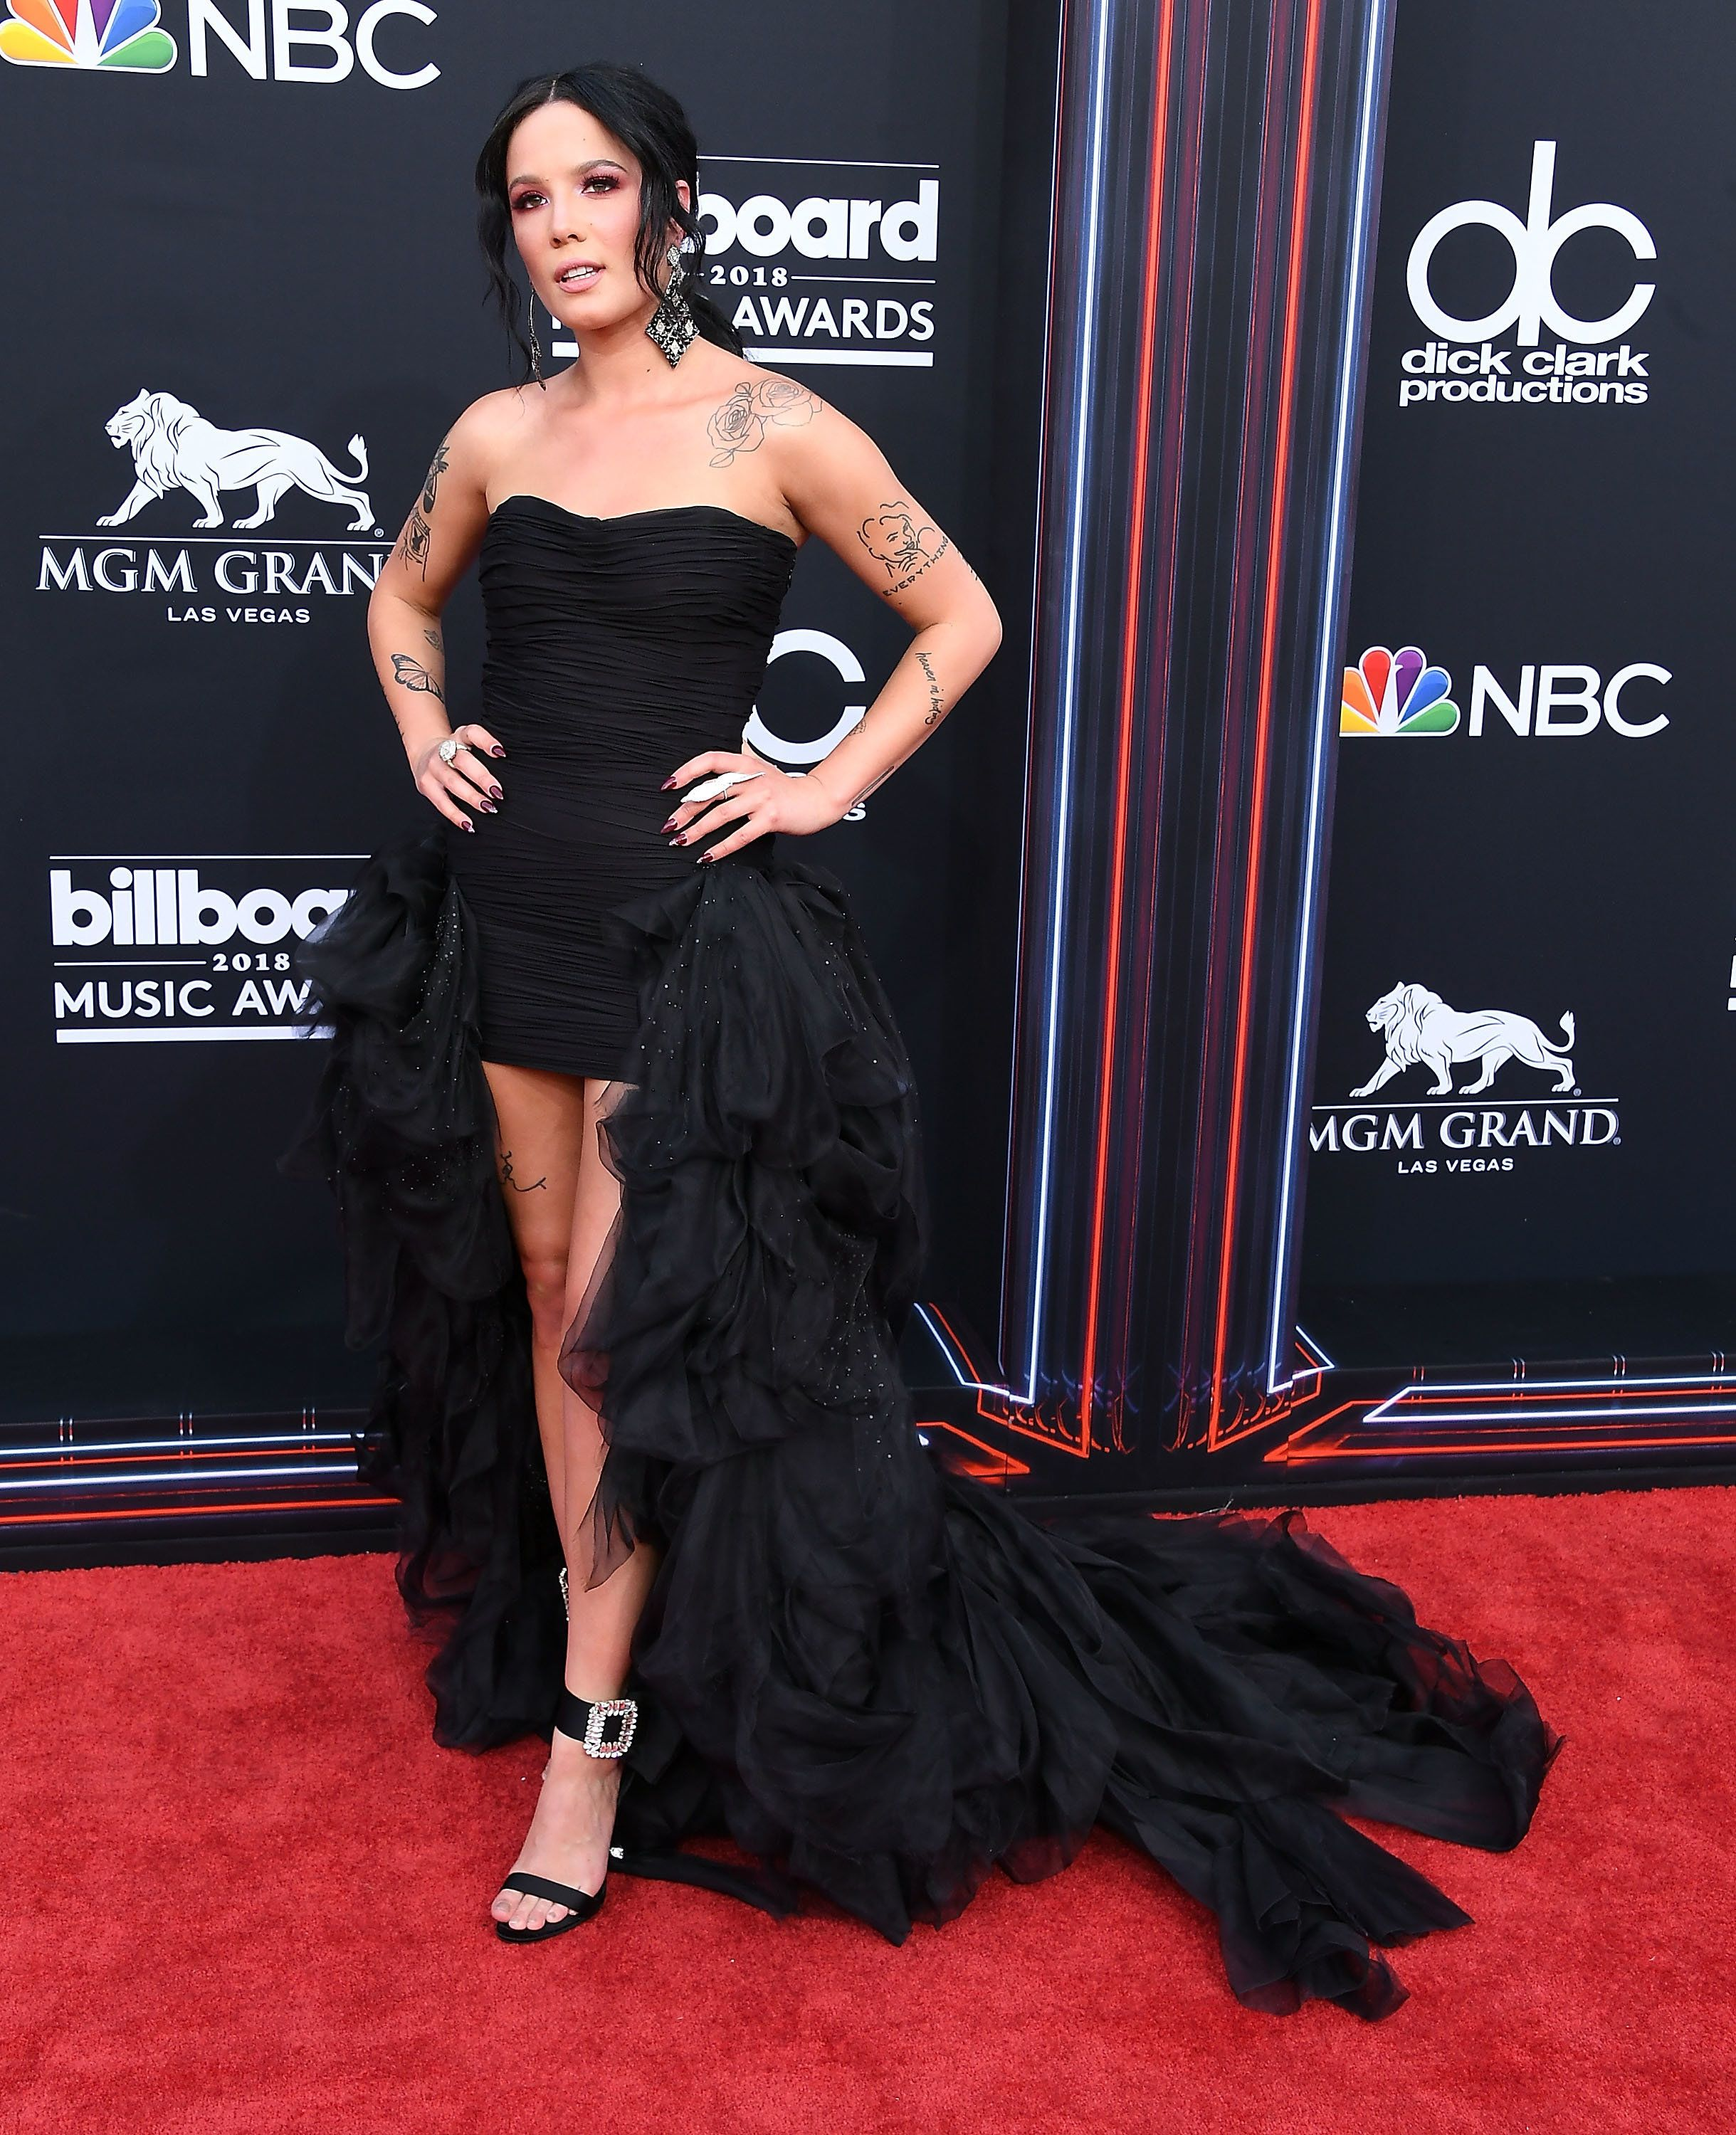 Wearing a gown by Redemption at the 2018 Billboard Music Awards on May 20, in Las Vegas.